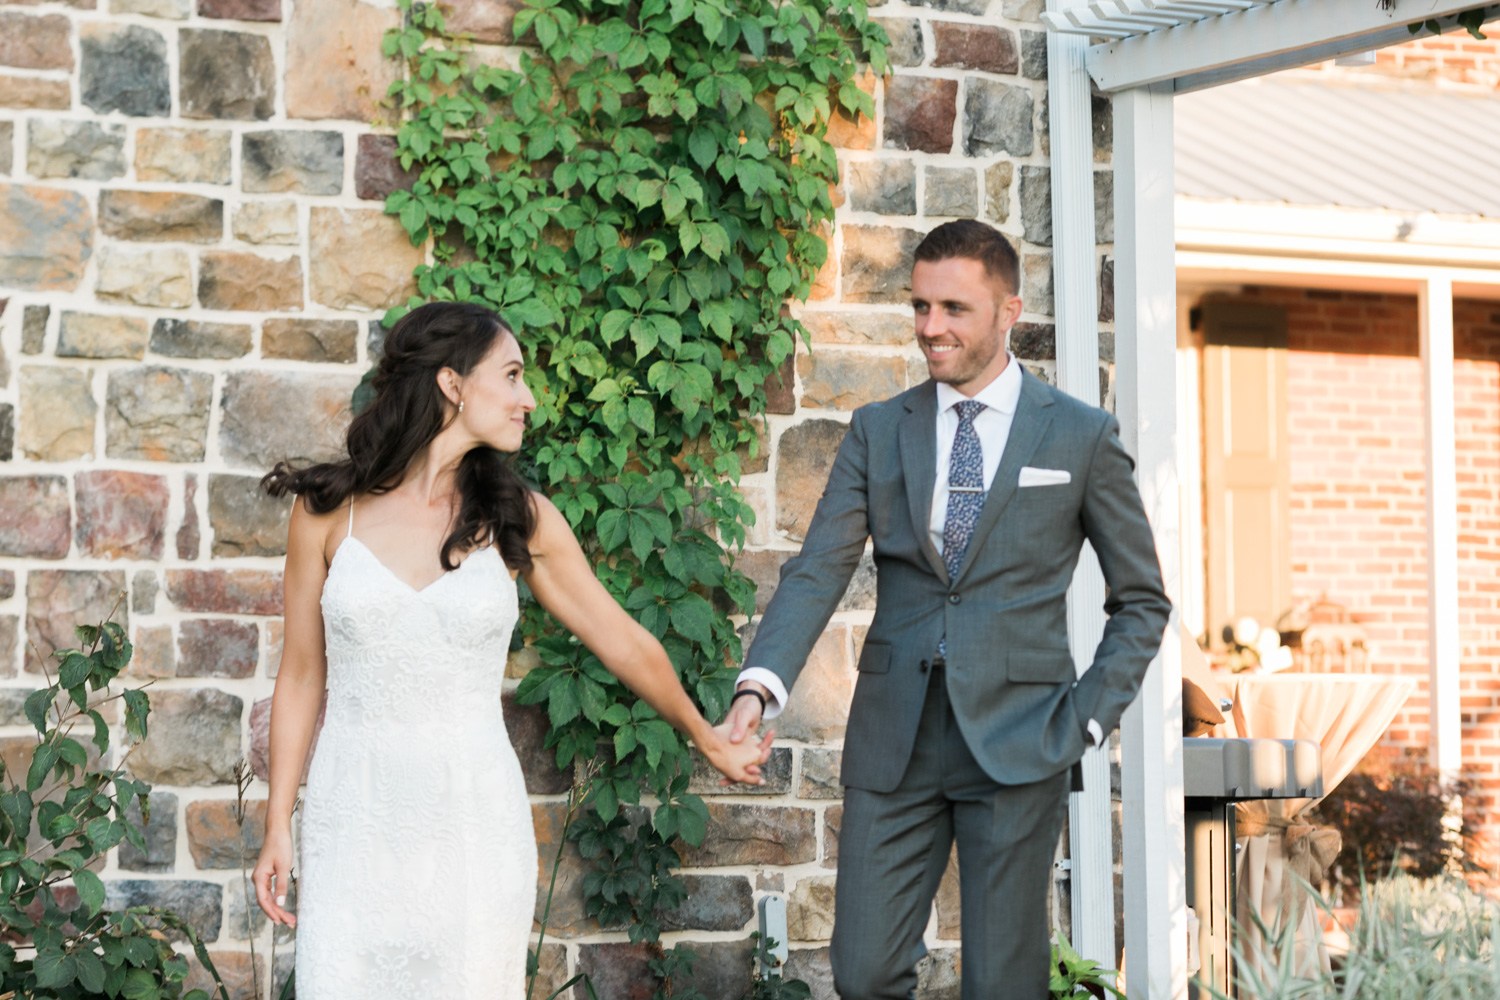 image of bride and groom at wedding at private residence in Gettysburg